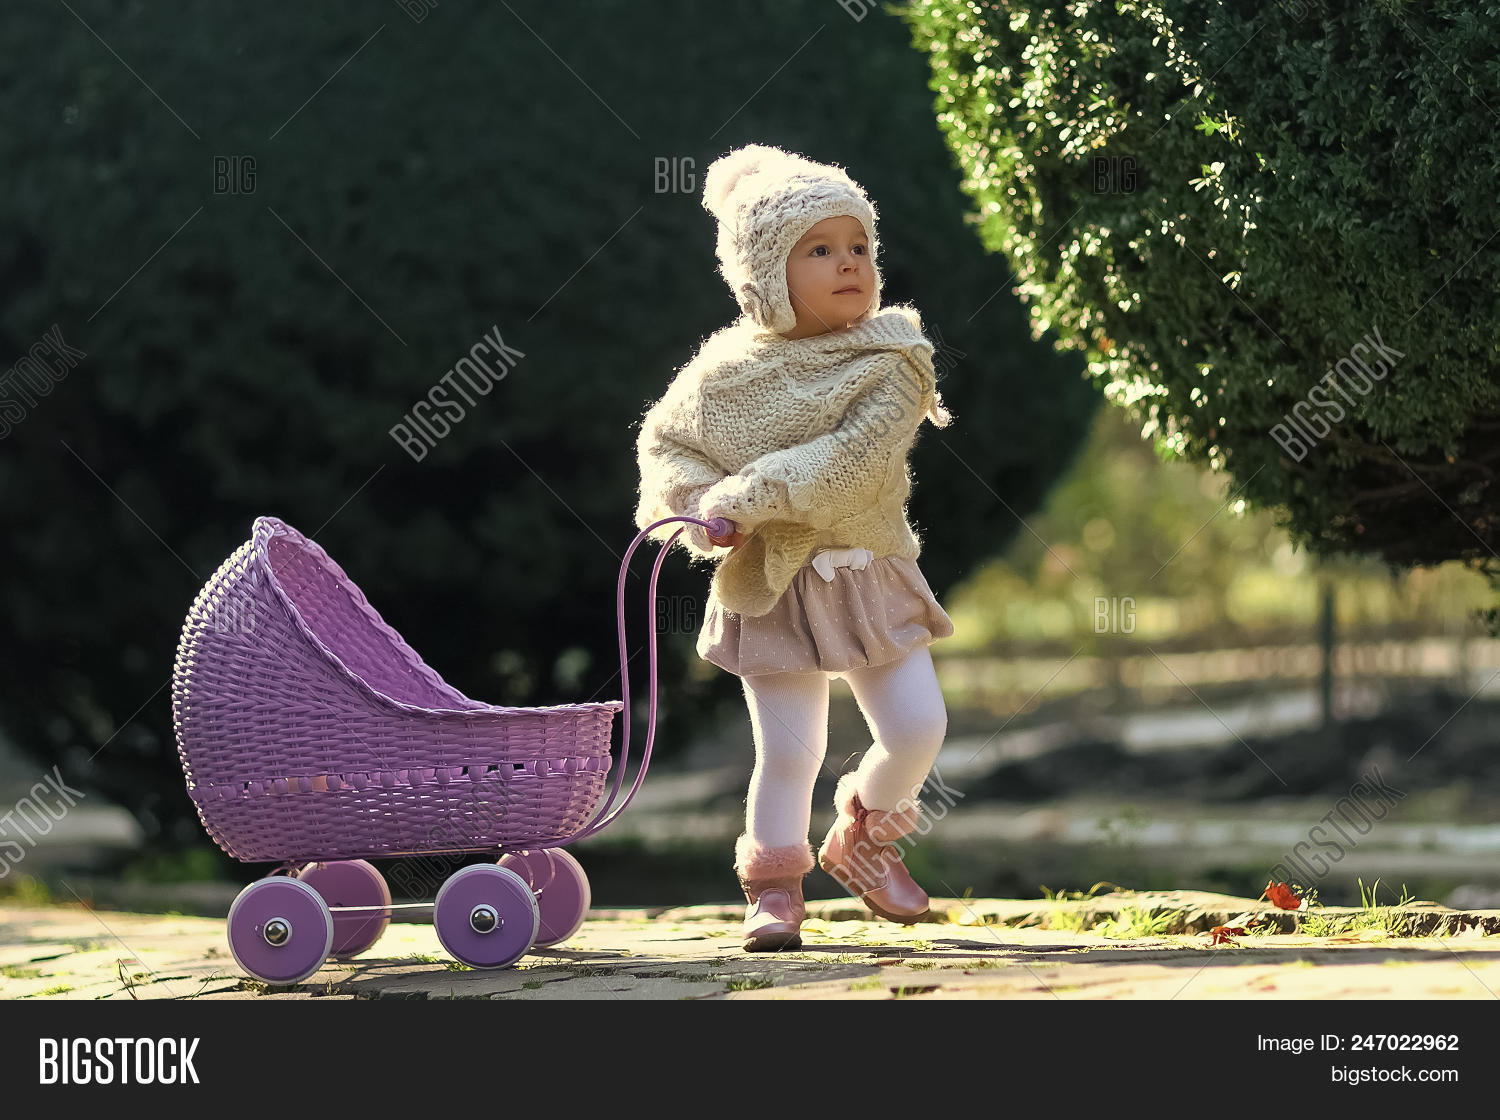 Vintage Toy Stroller Child Childhood Image Photo Free Trial Bigstock